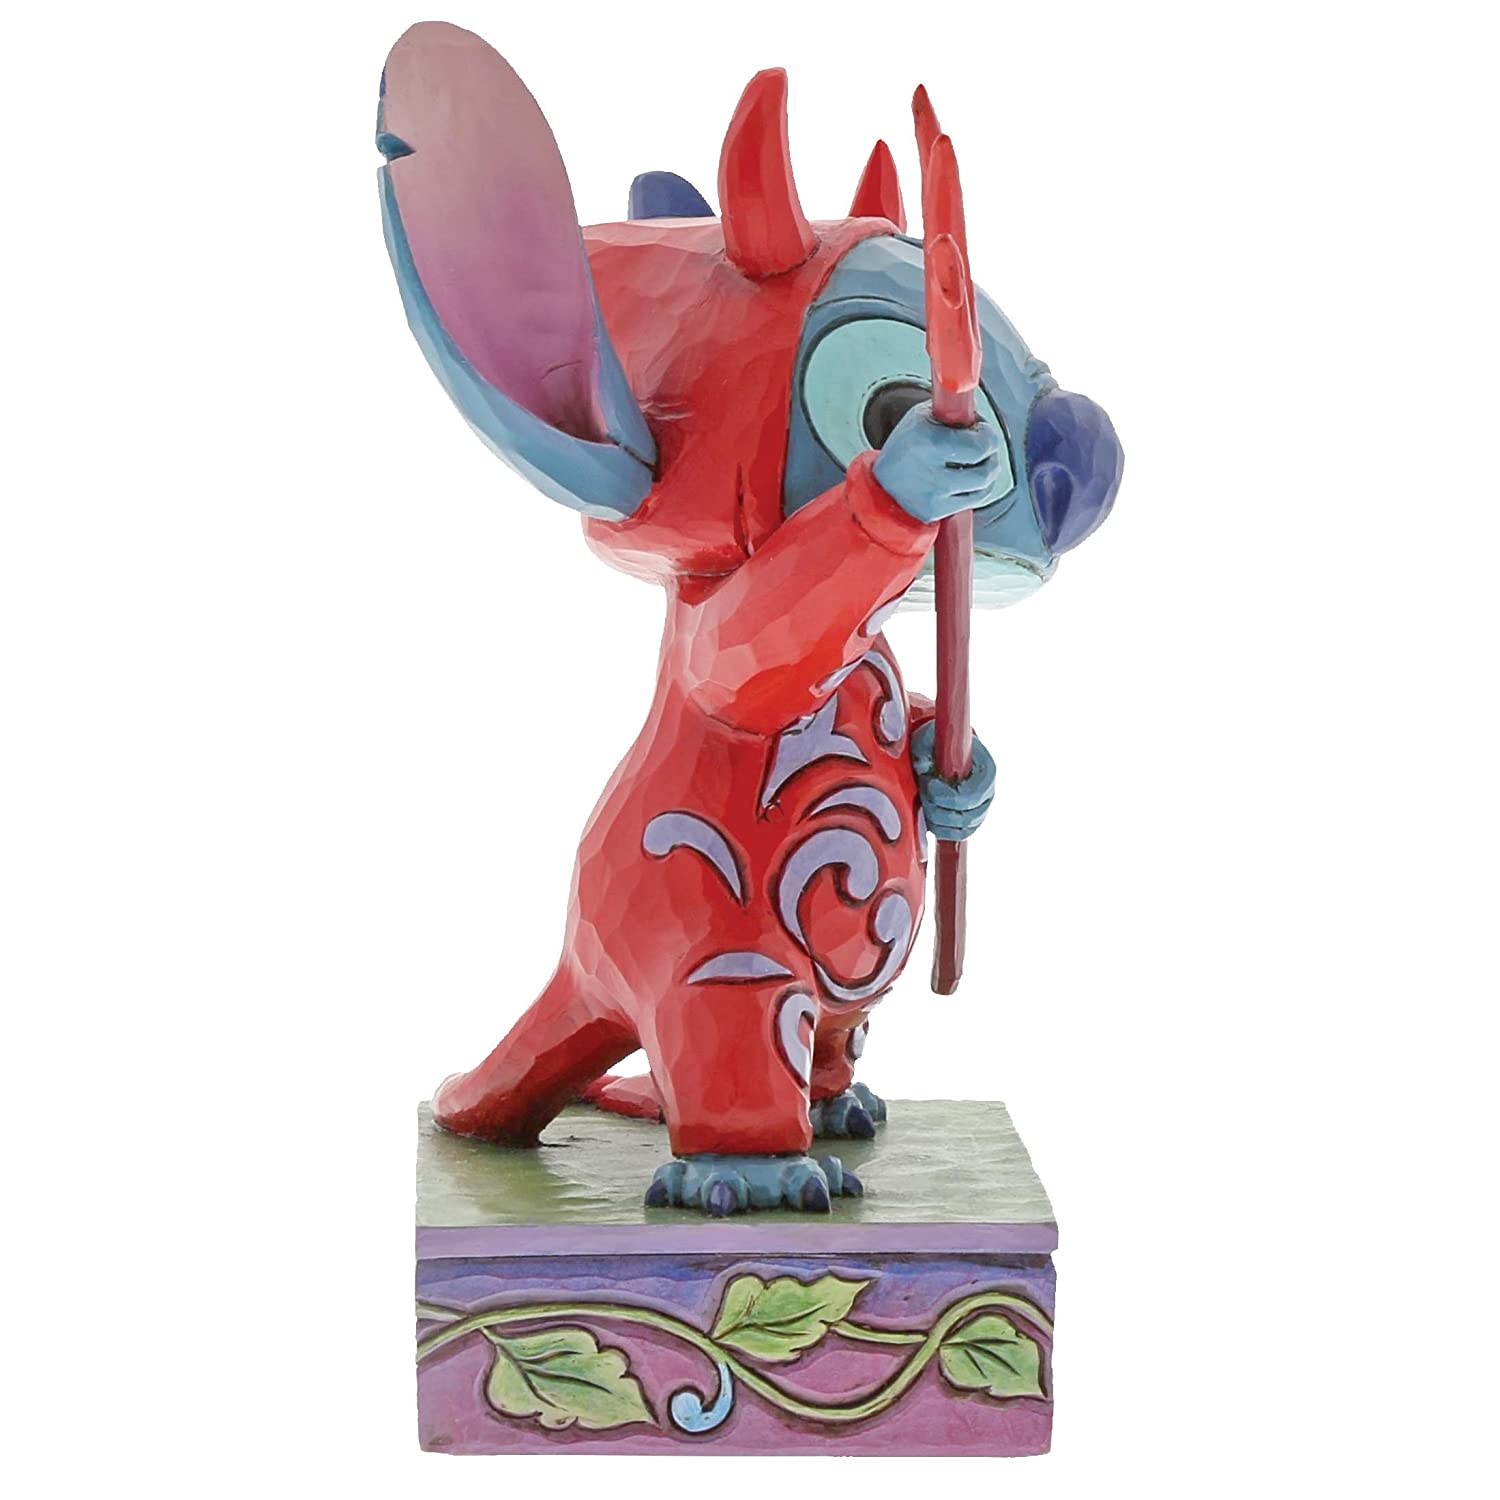 Disney Traditions Devilish Delight - Stitch Figurine: Amazon.de ...